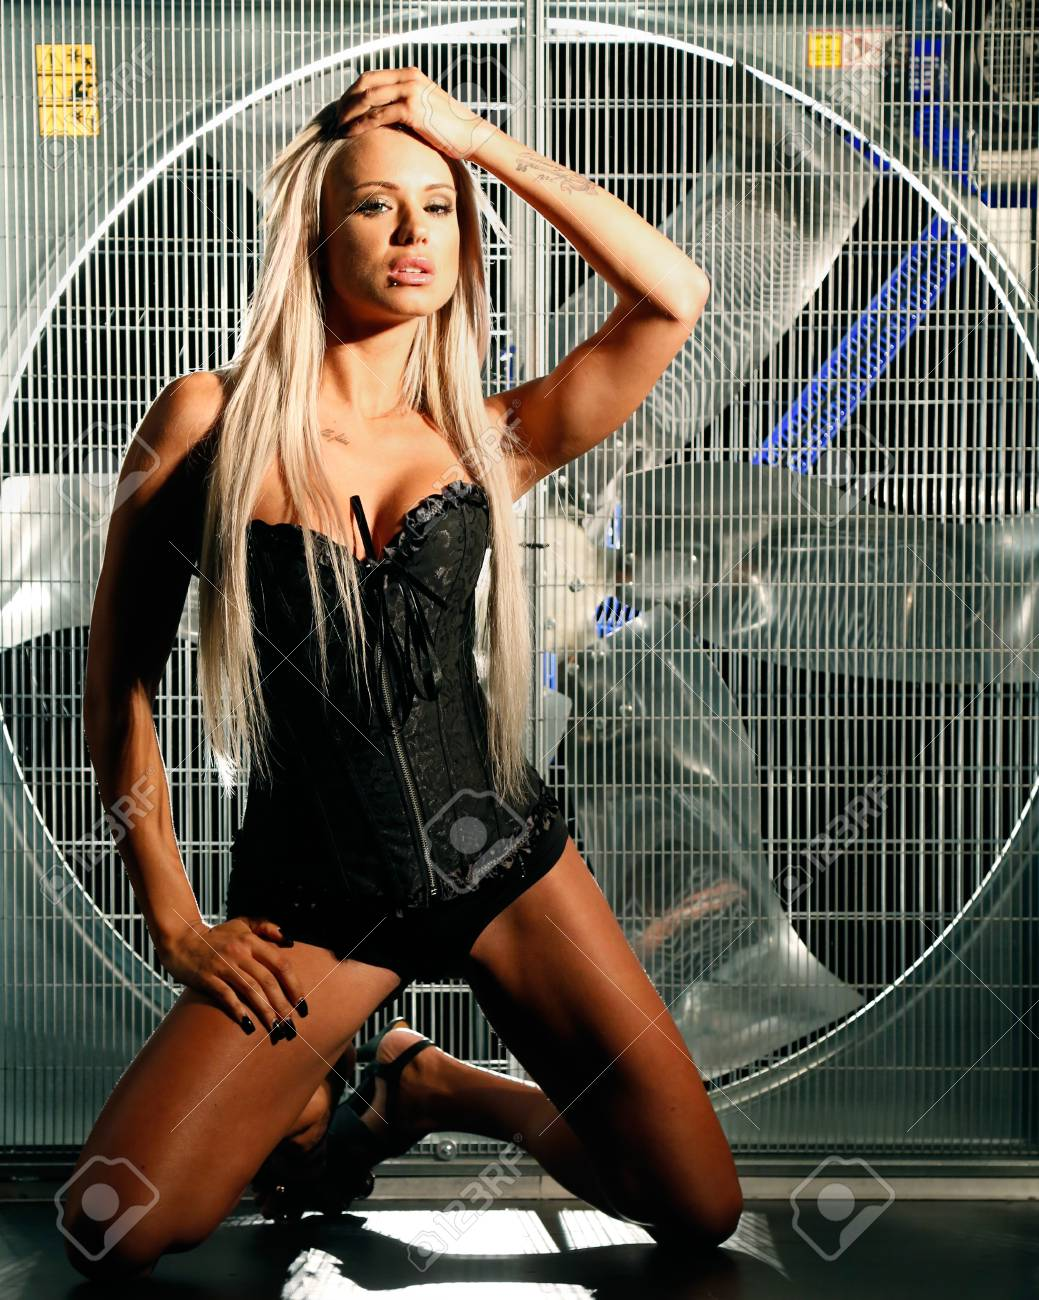 very sexy and beautiful woman is posing with a huge industrial turbo wind fan behind her were smoke and lights are coming trough Stock Photo - 15448361